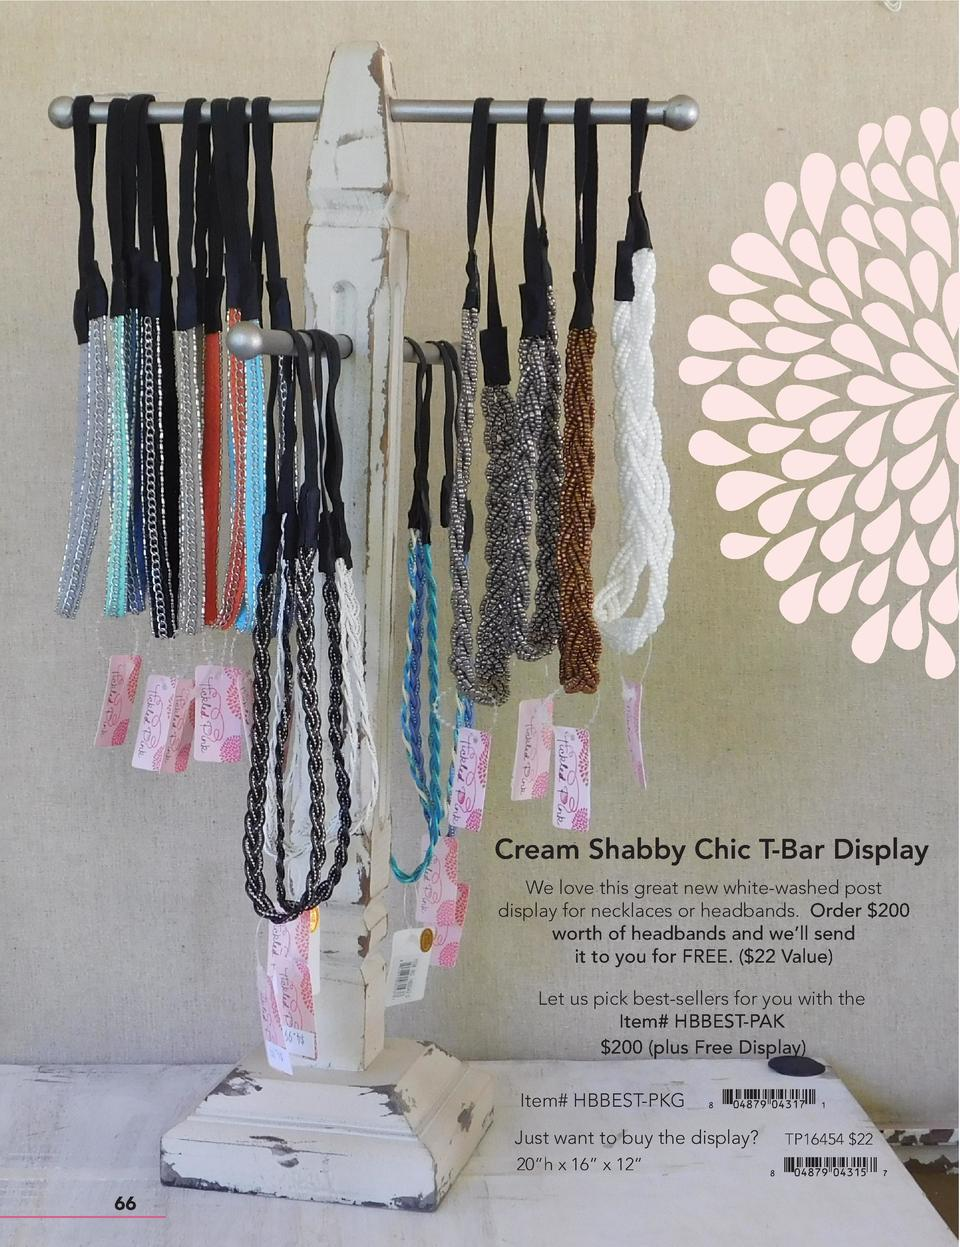 Cream Shabby Chic T-Bar Display We love this great new white-washed post display for necklaces or headbands. Order  200 wo...